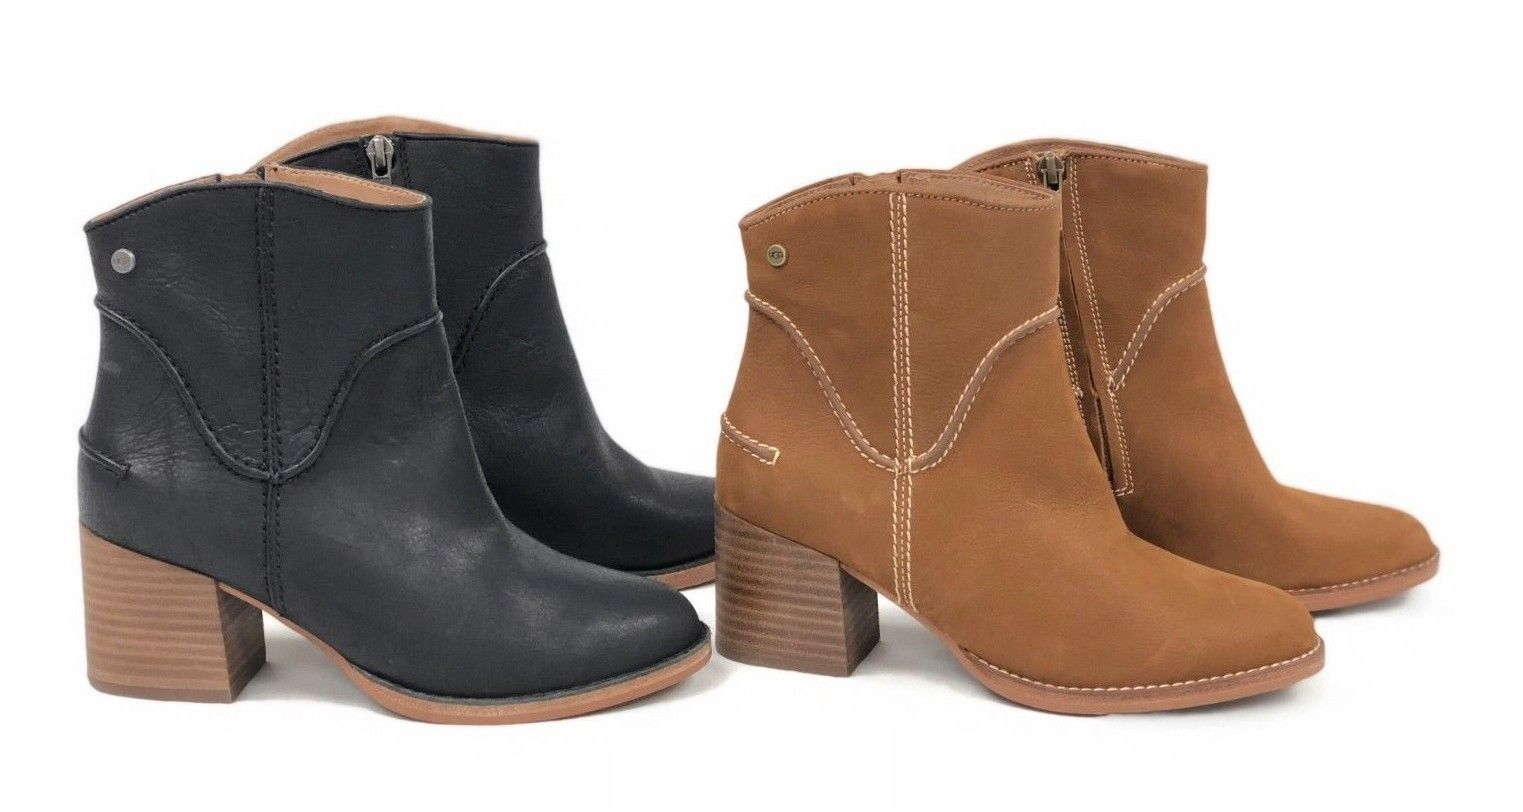 aedfb2d2280 Ugg Australia Annie Bootie Chestnut or Black and 50 similar items